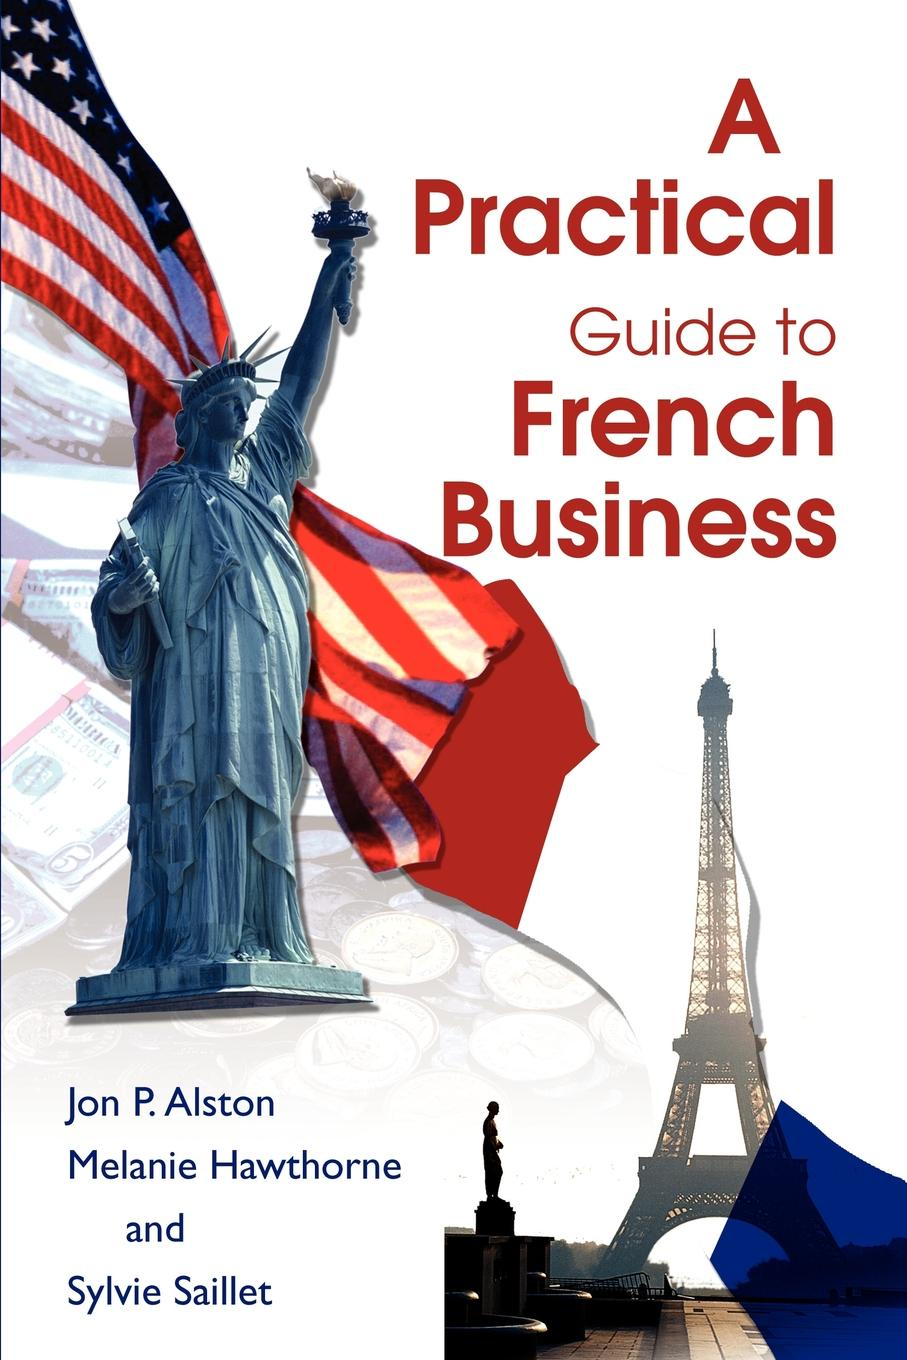 Jon P. Alston A Practical Guide to French Business